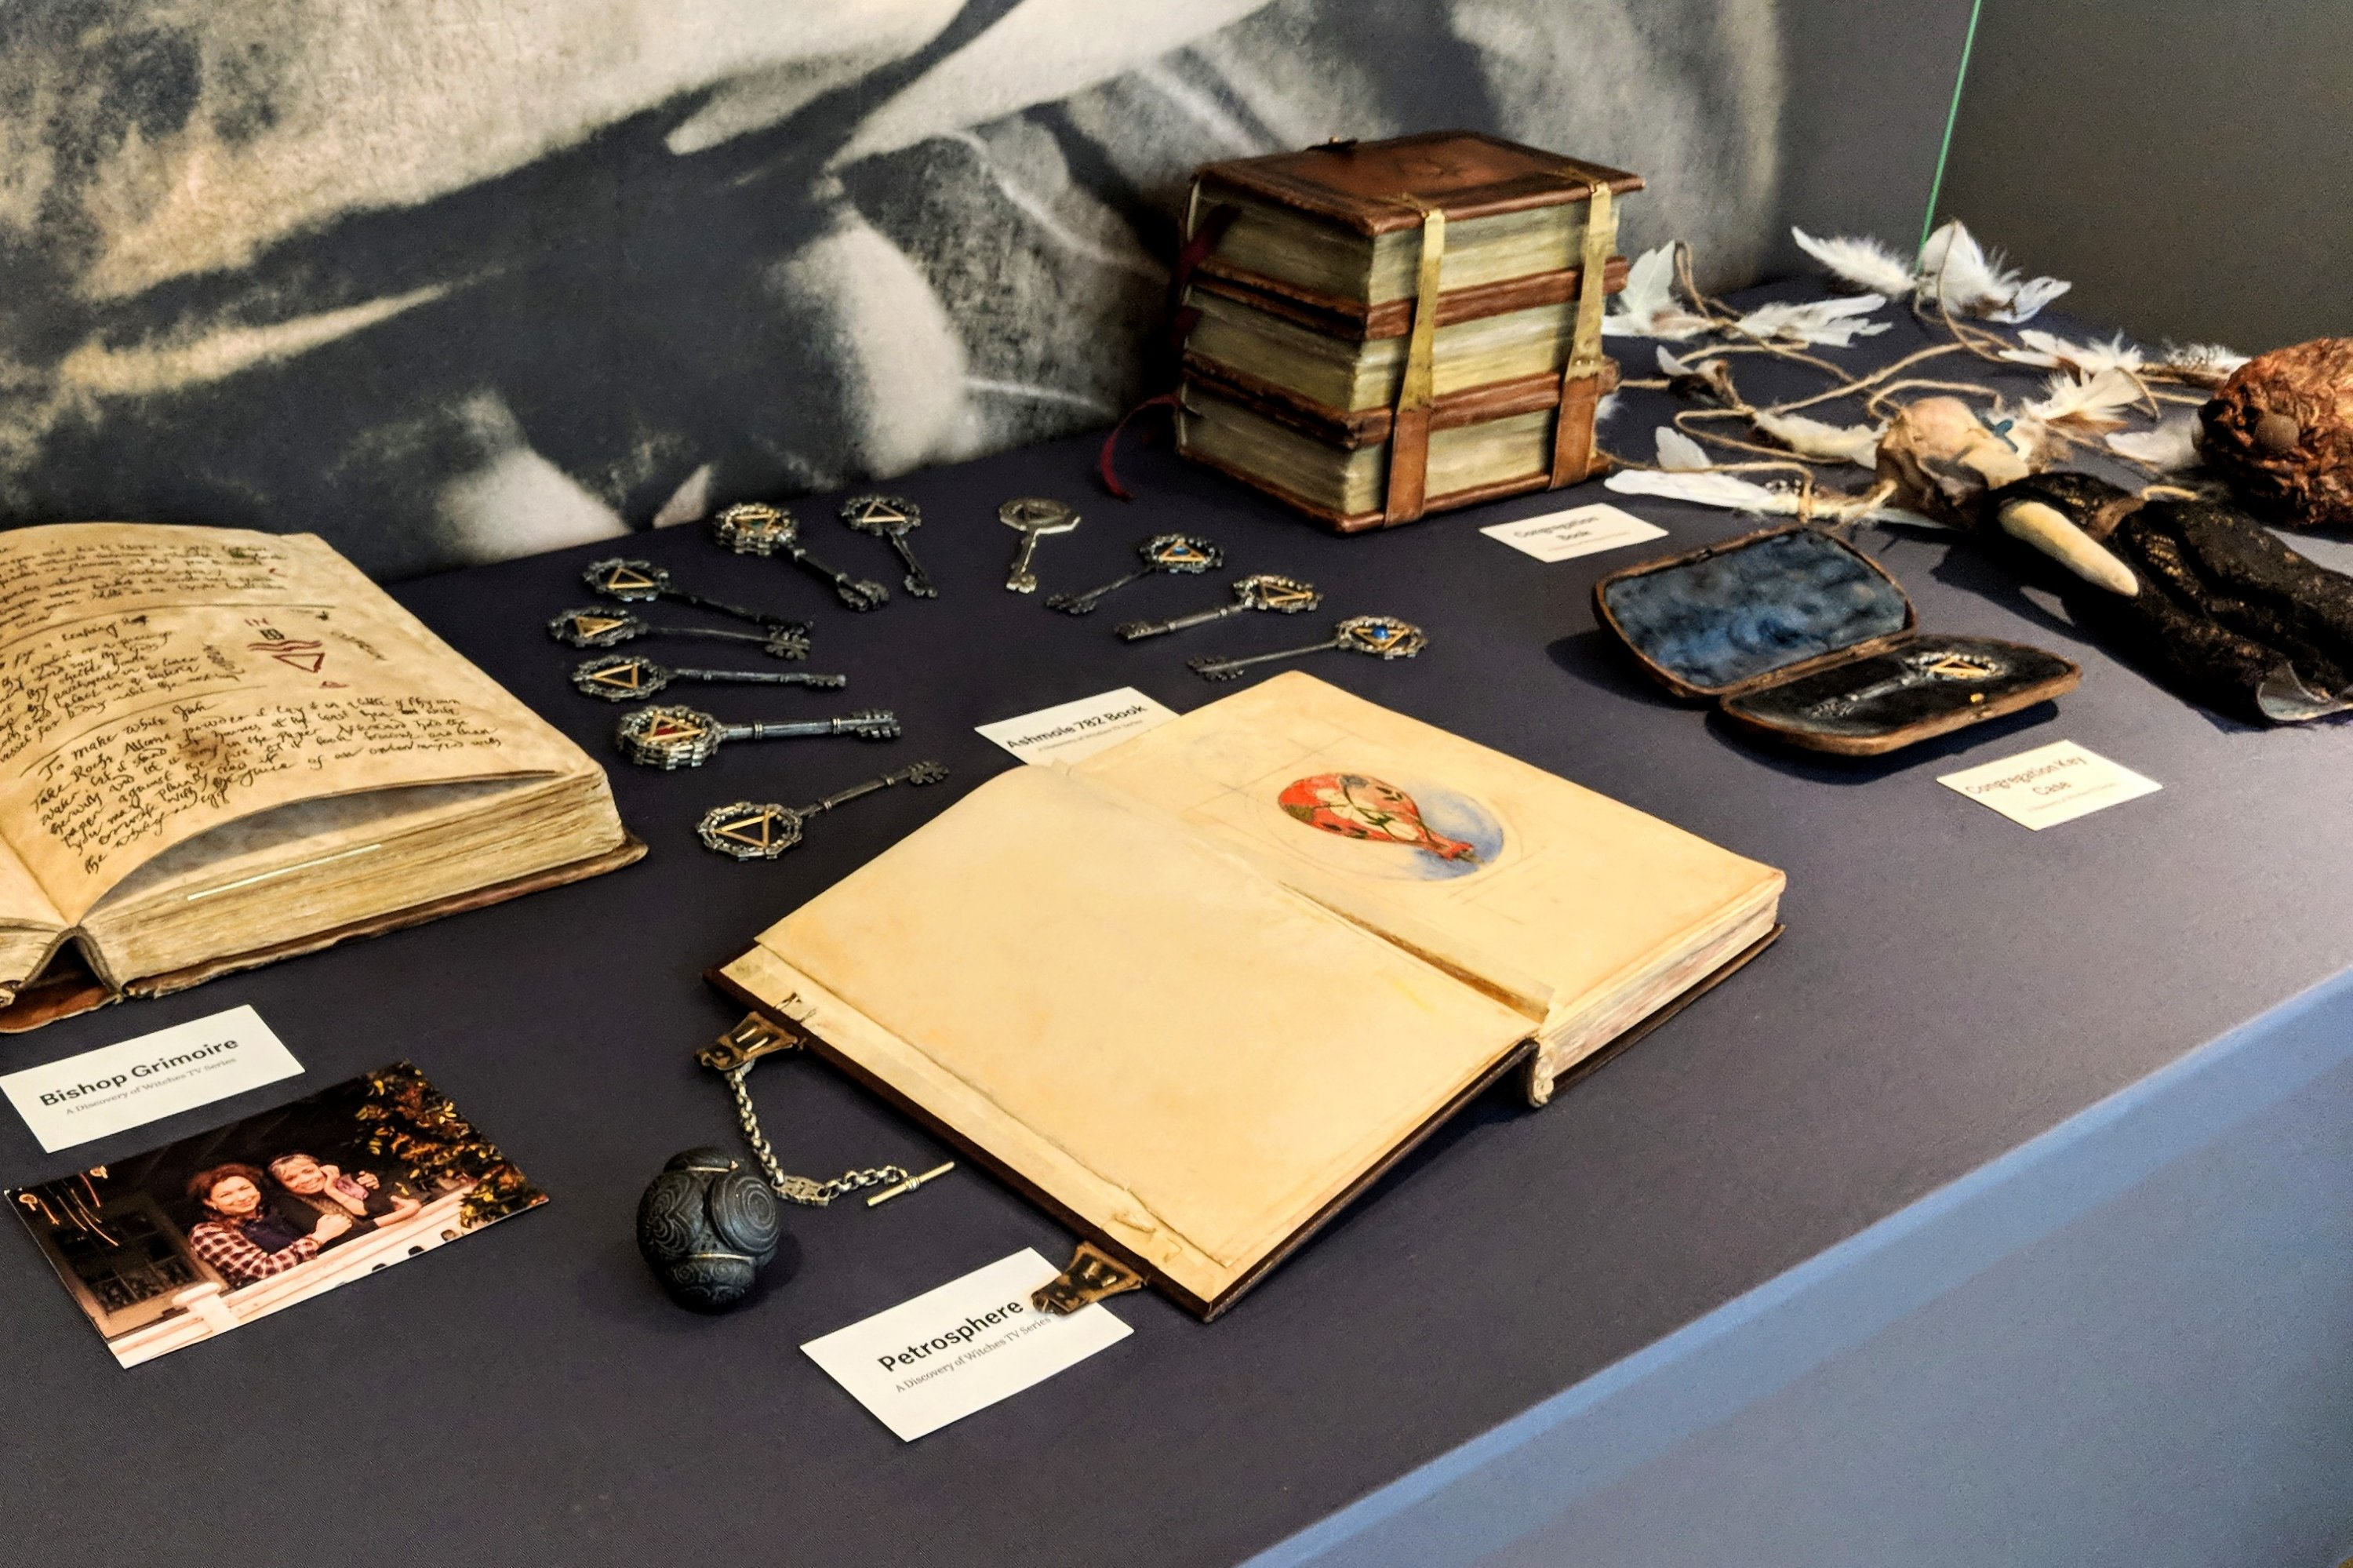 Props from the set of A Discovery of Witches TV series, including Ashmole 782 book, keys bearing alchemy symbols, books, a voodoo doll and other magical objects from the TV show and book by Deborah Harkness.